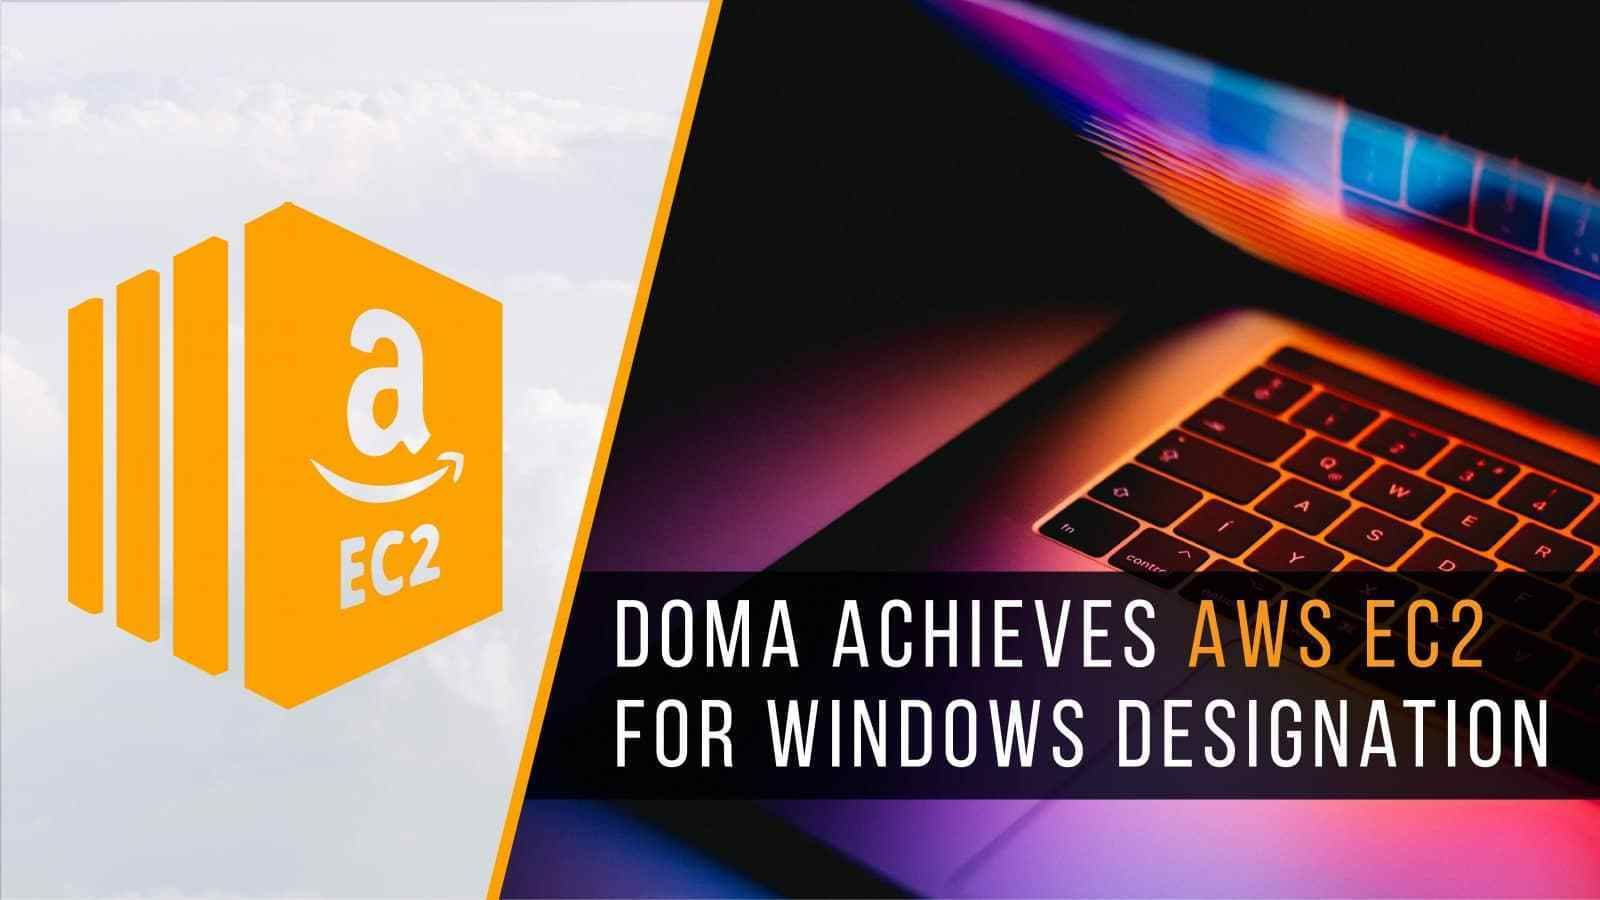 Doma Achieves The Aws Service Delivery Designation For Amazon Ec2 Business Continuity Make Business Doma